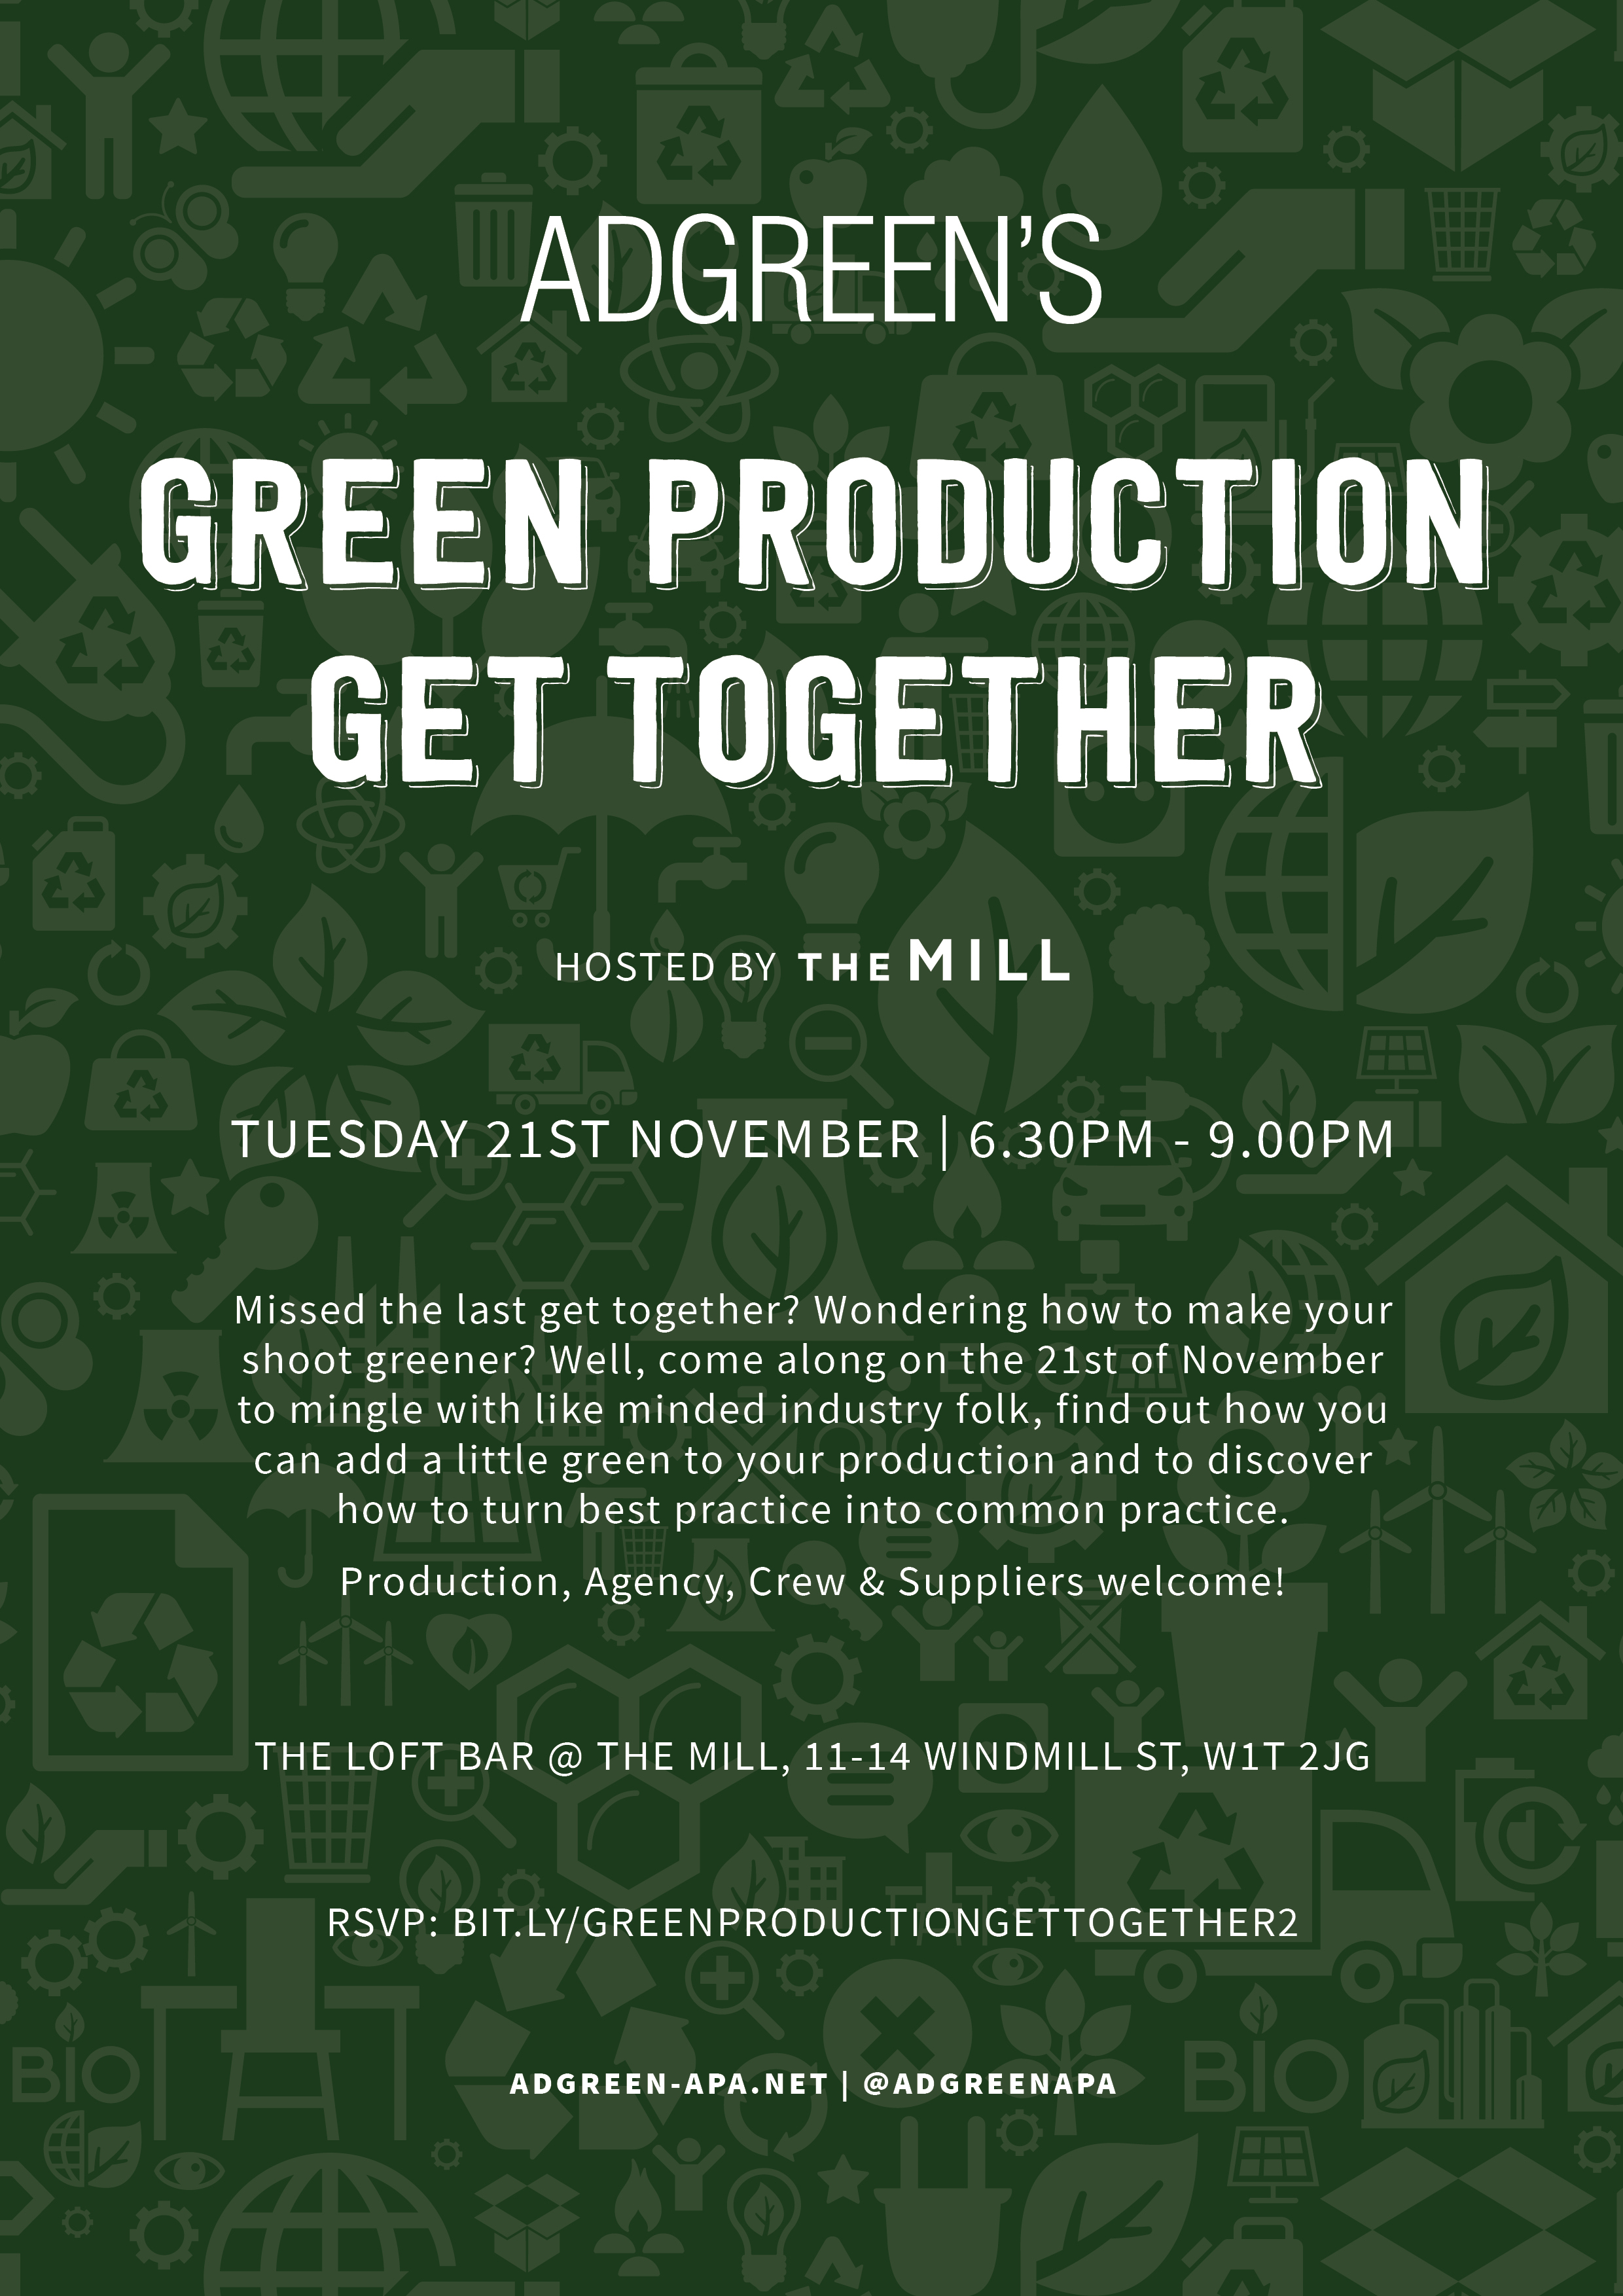 Green Production Get Together! Missed the last get together? Wondering how to make your shoot greener? Well, come along on the 21st of November to mingle with like minded industry folk, find out how you can add a little green to your production and to discover how to turn best practice into common practice.